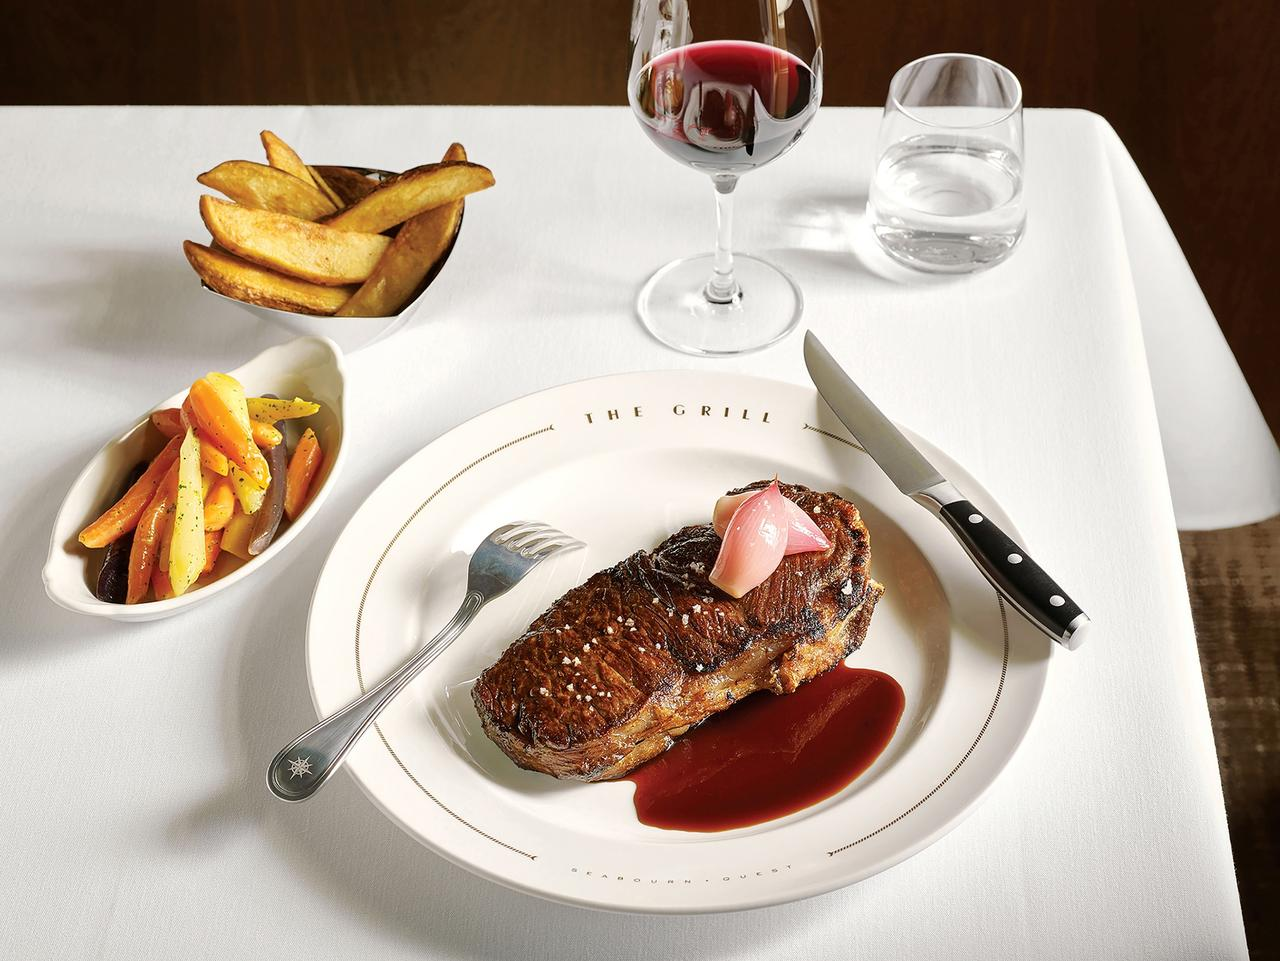 ESCAPE: Celebrity chefs on cruises. Thomas Keller's NY Steak at The Grill on The Seabourn. Picture: Supplied